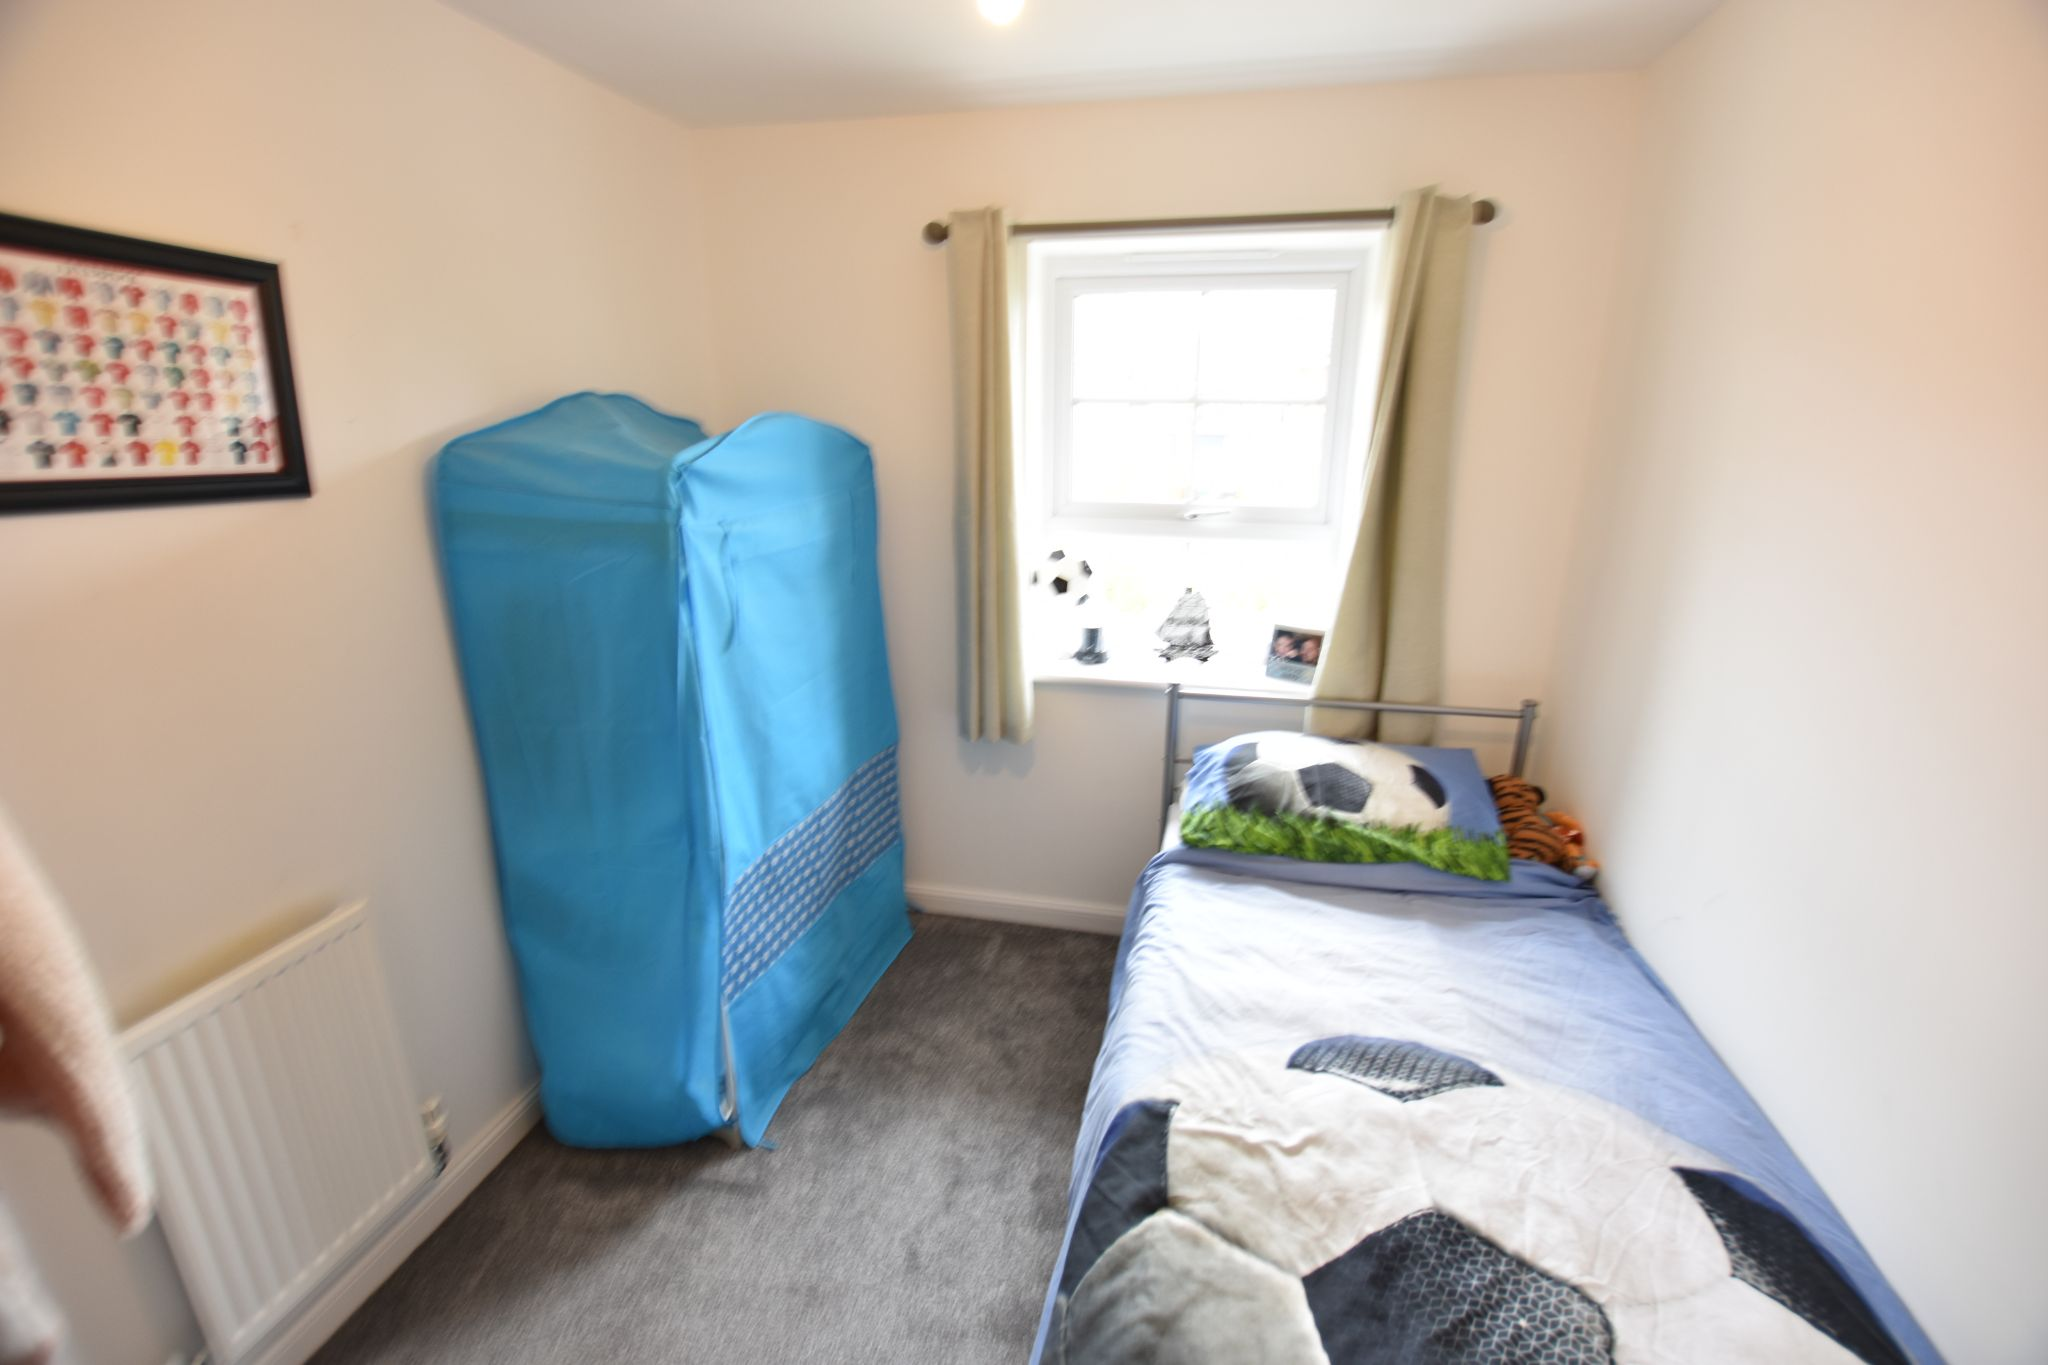 Image 2 of 3 of BEDROOM 2, on Accommodation Comprising for